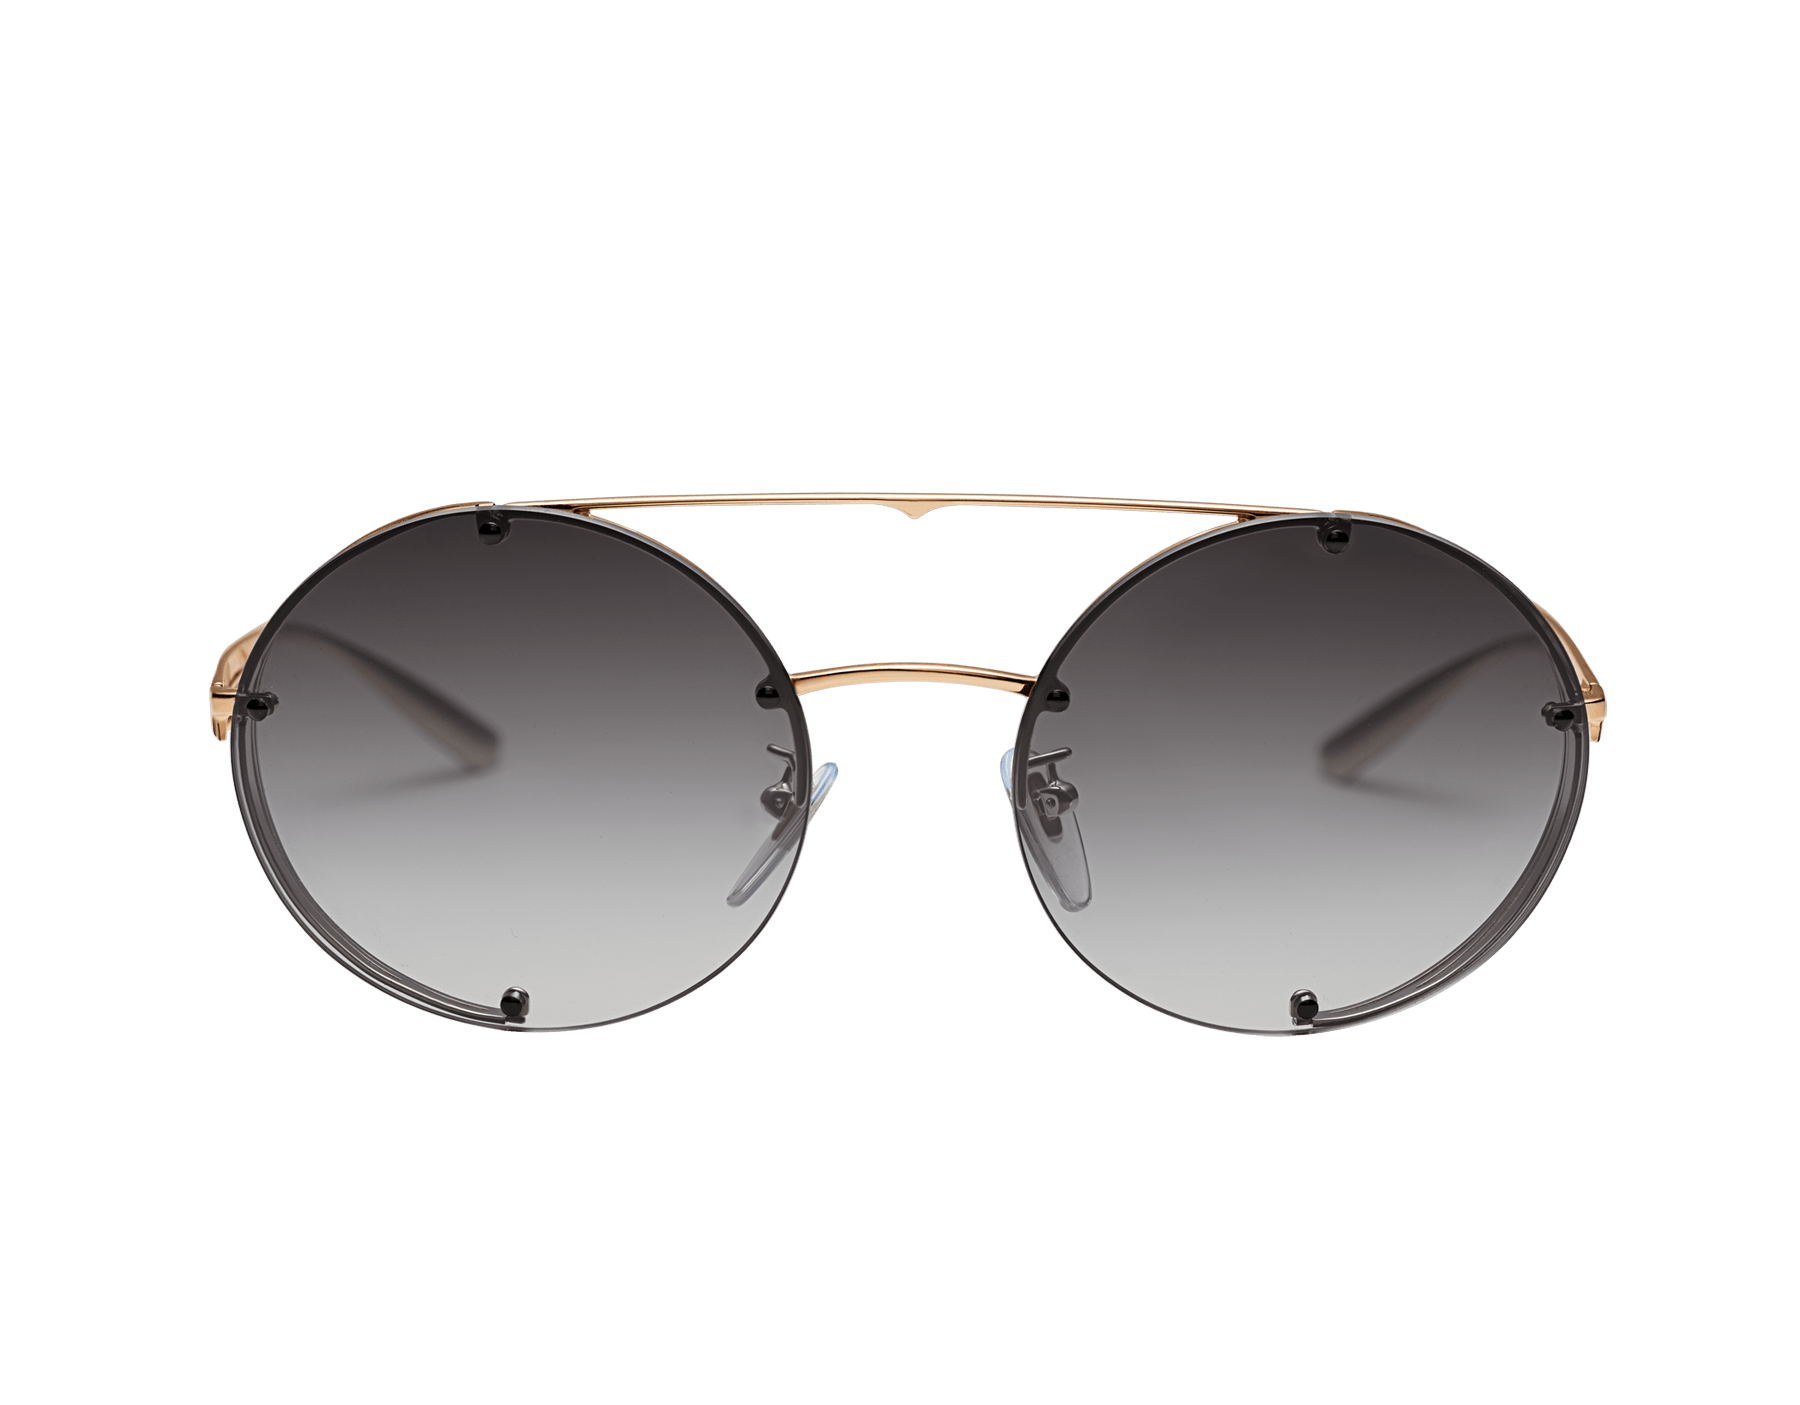 Bvlgari B.zero1 B.flyingstripe round metal aviator sunglasses. 903815 image 2